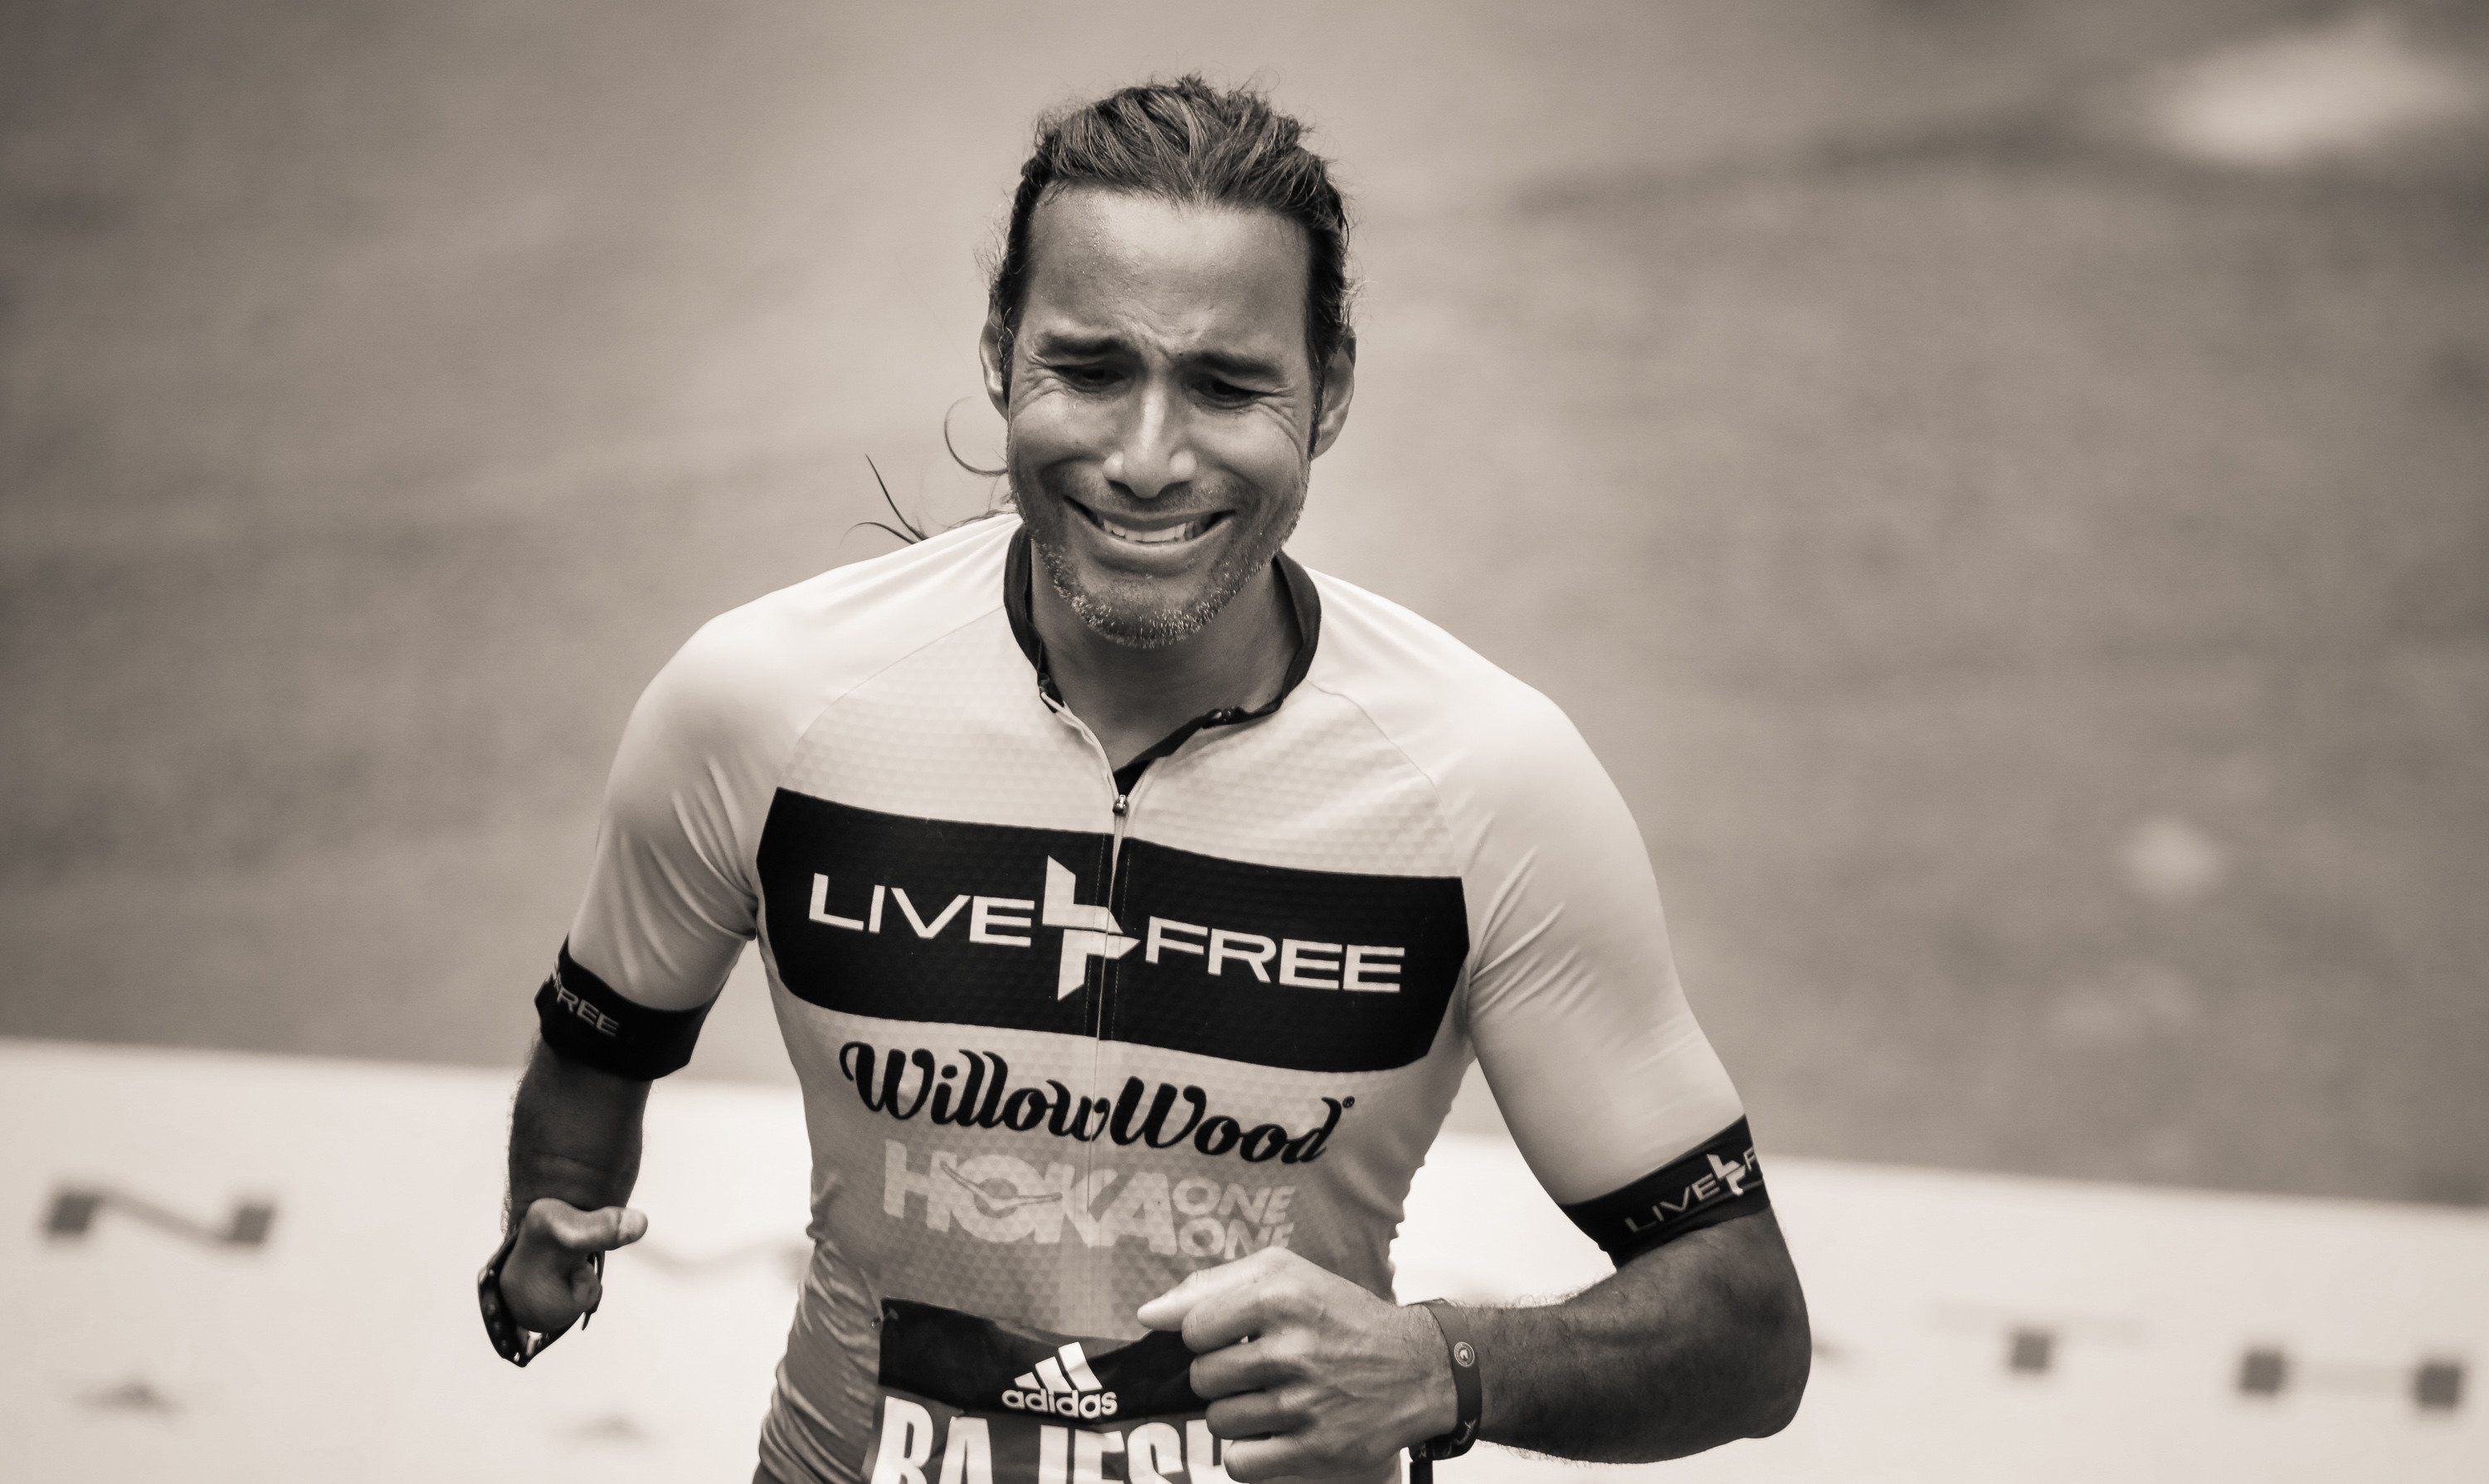 A man smiles as he crosses the finish line